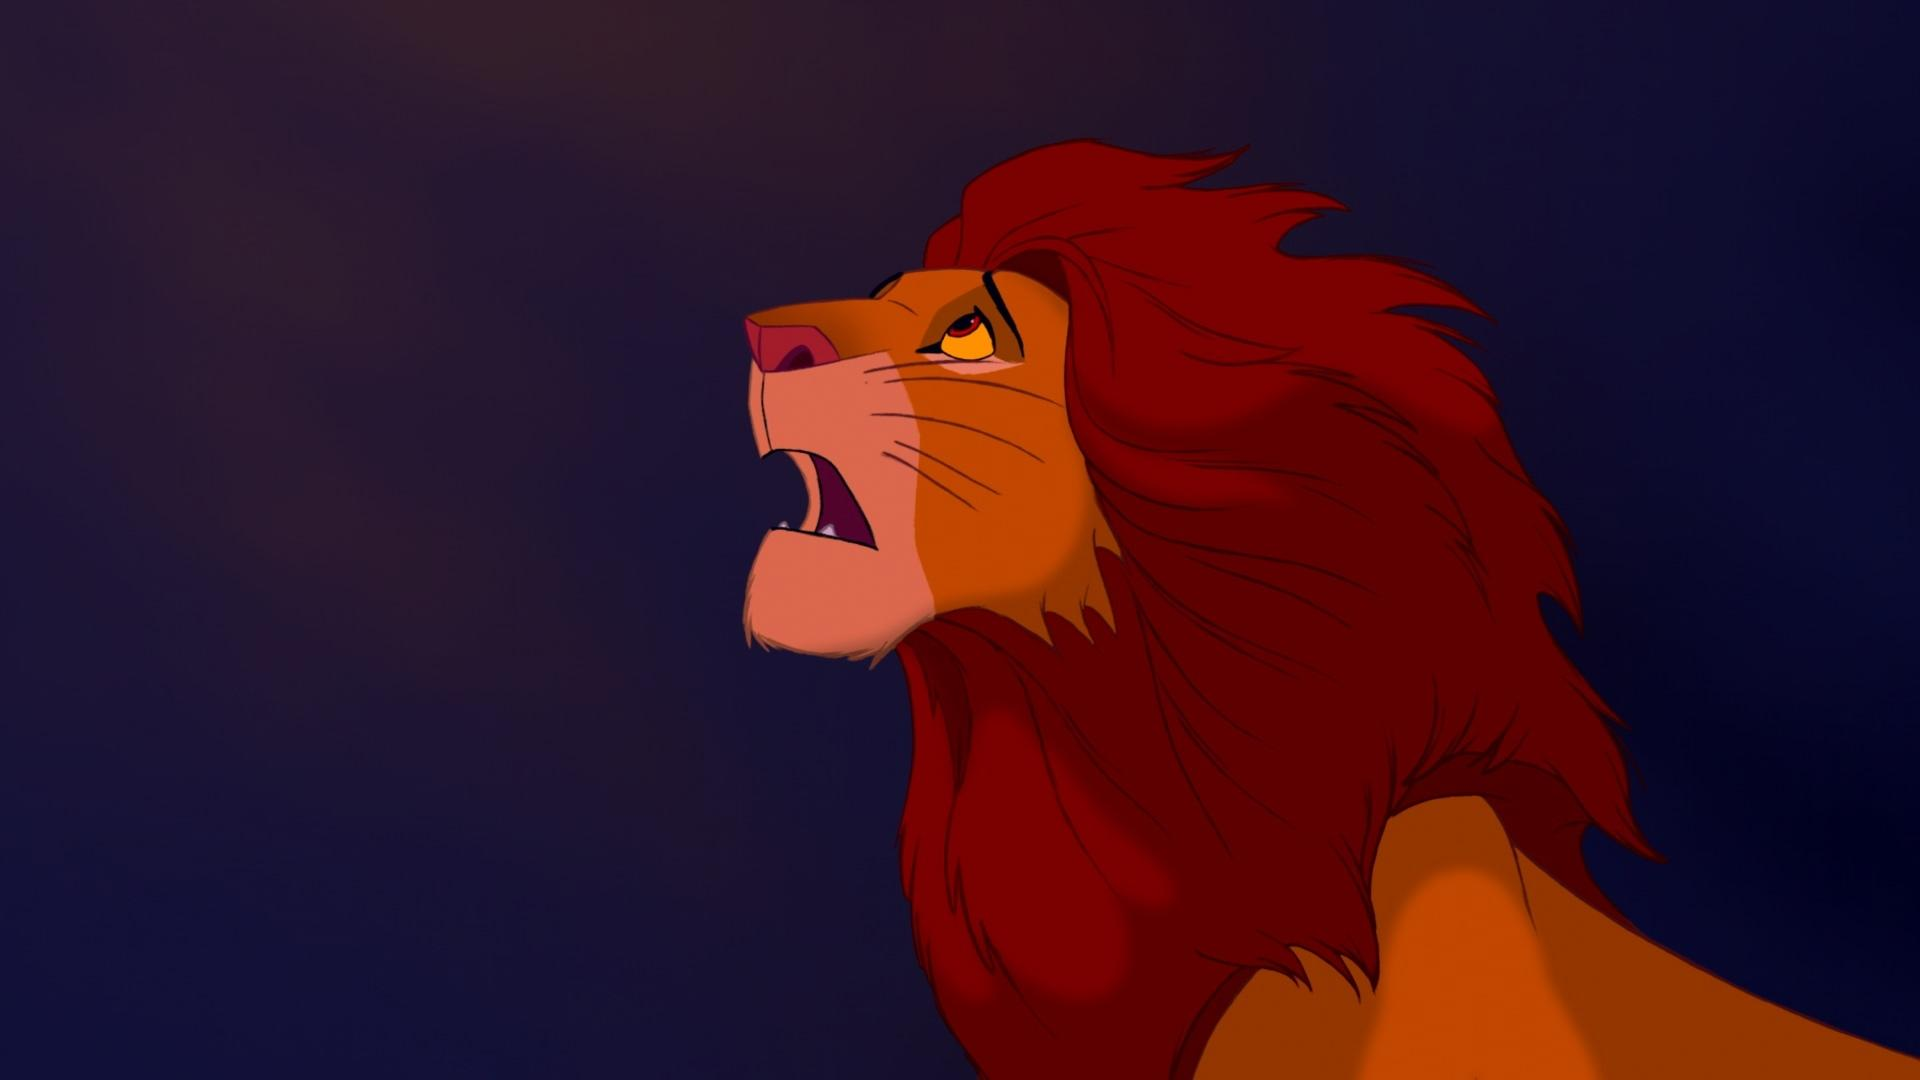 Great Film The Lion King 1994 The Critical Reel